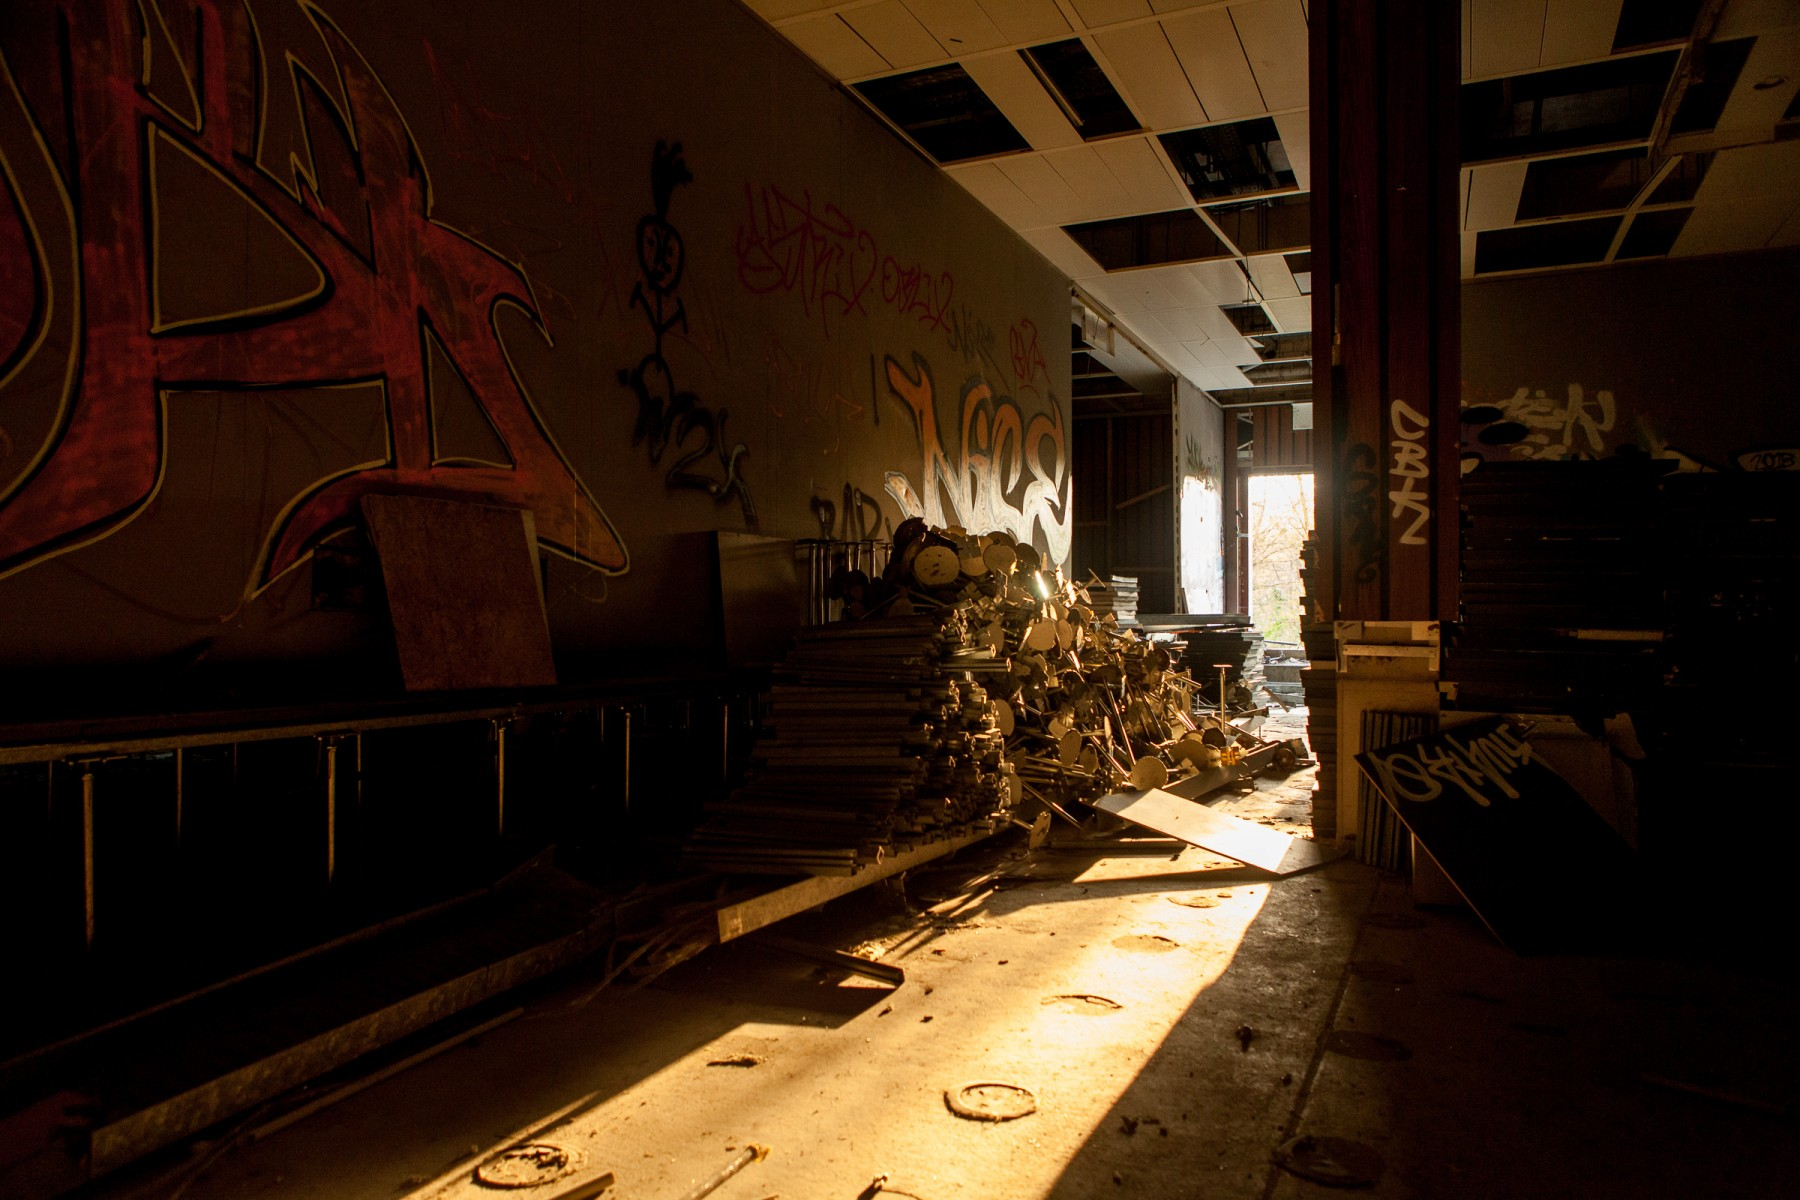 Scrap metal piled in the hallways at Teufelsberg